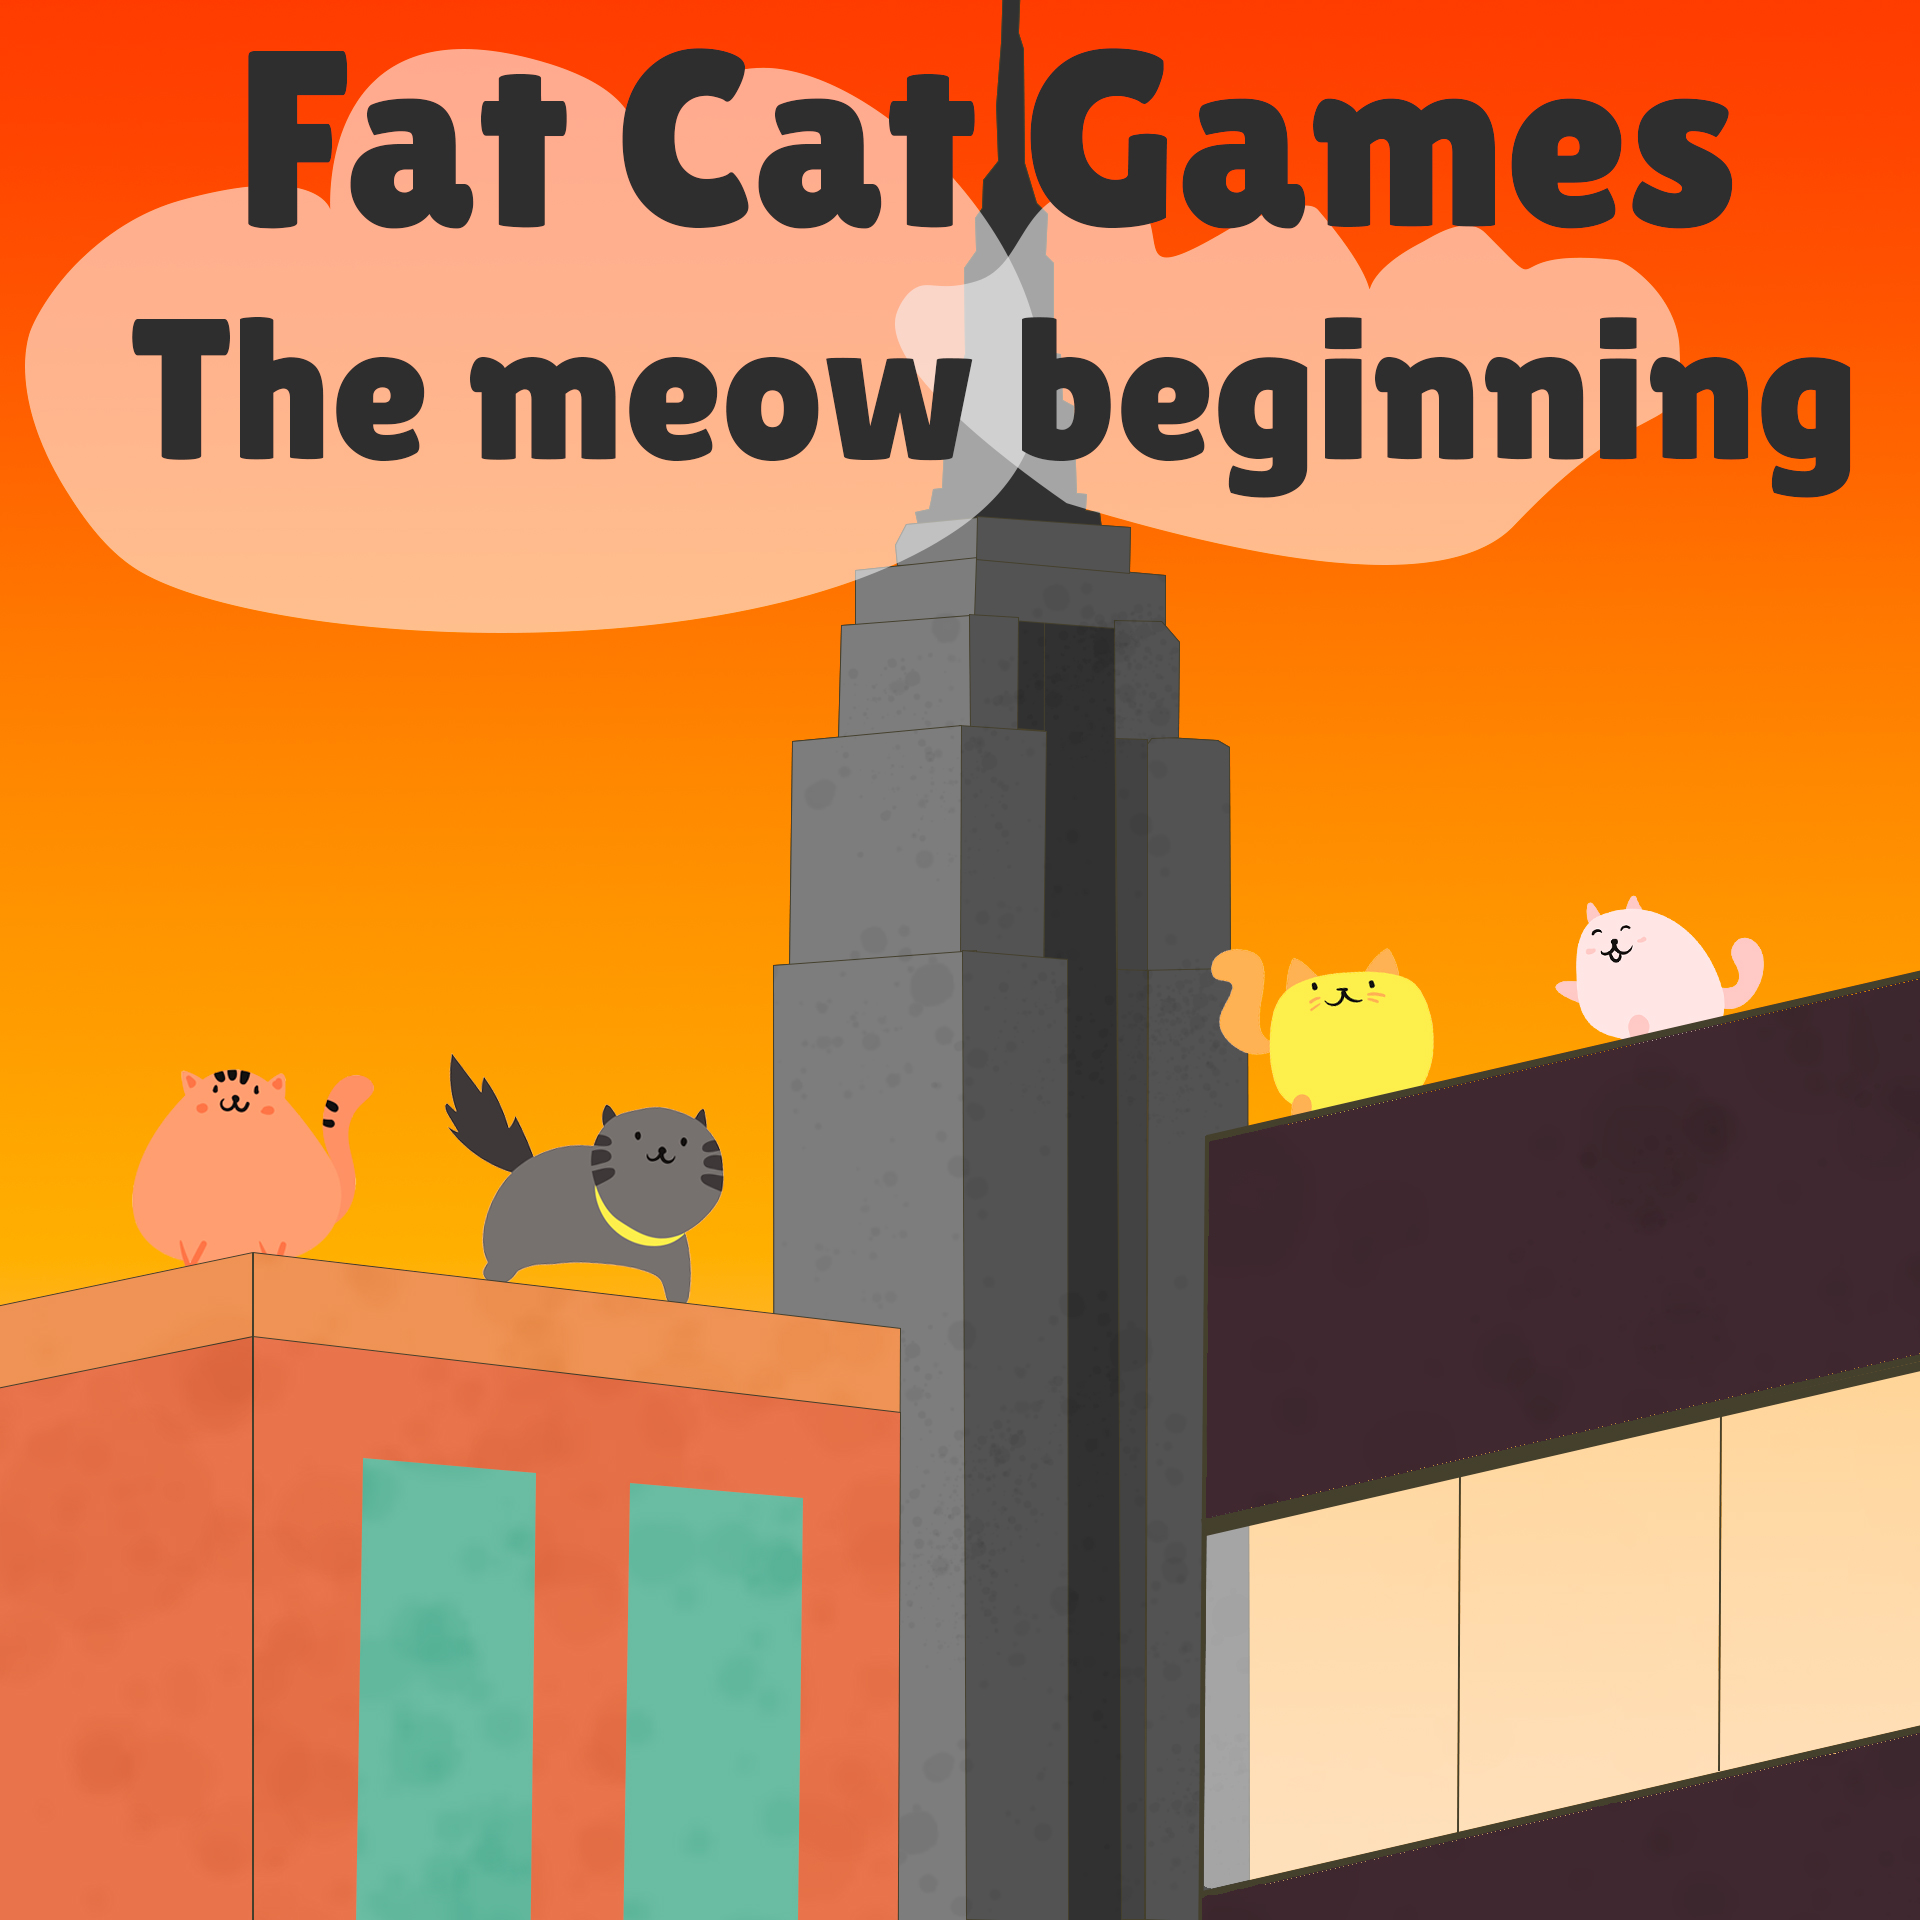 The meow beginning at Fat Cat Games